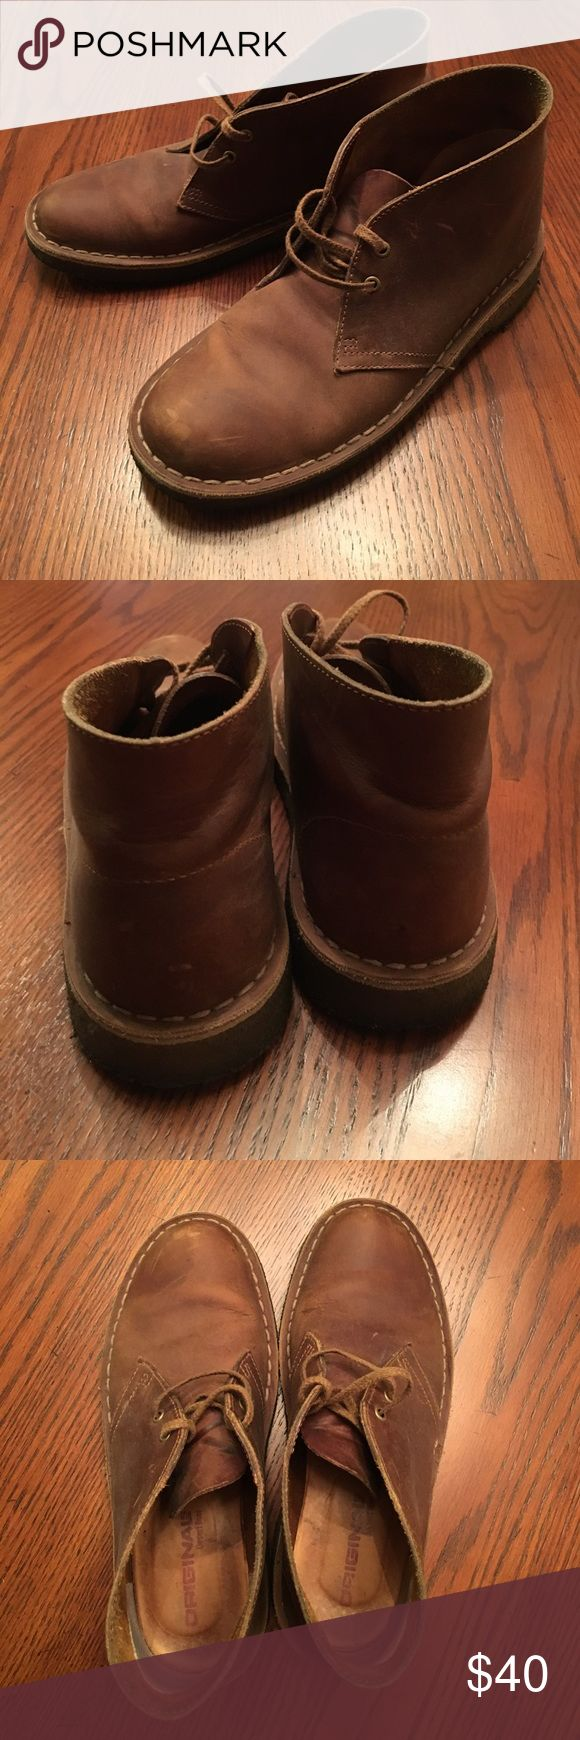 Clarks Boots Used but still in really good condition. A few scuffs but not super worn it at all. Women's size 7.5 38 EUR Clarks Shoes Ankle Boots & Booties